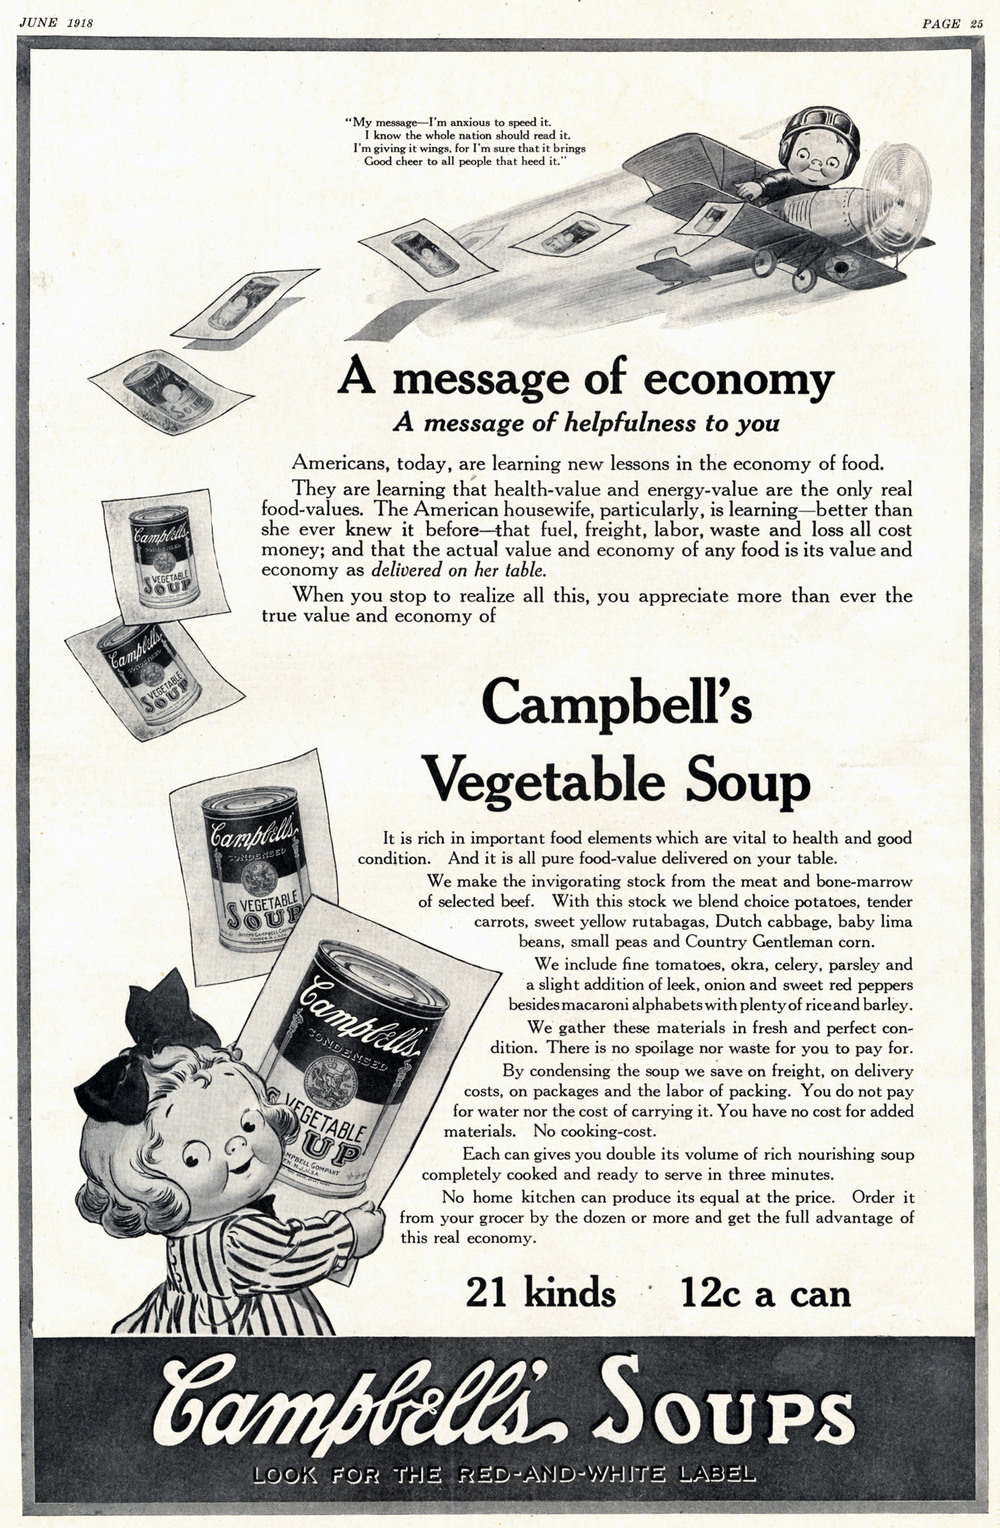 Grace Drayton, print ad for Campbell's Vegetable Soup. Unknown publication. June 1918.